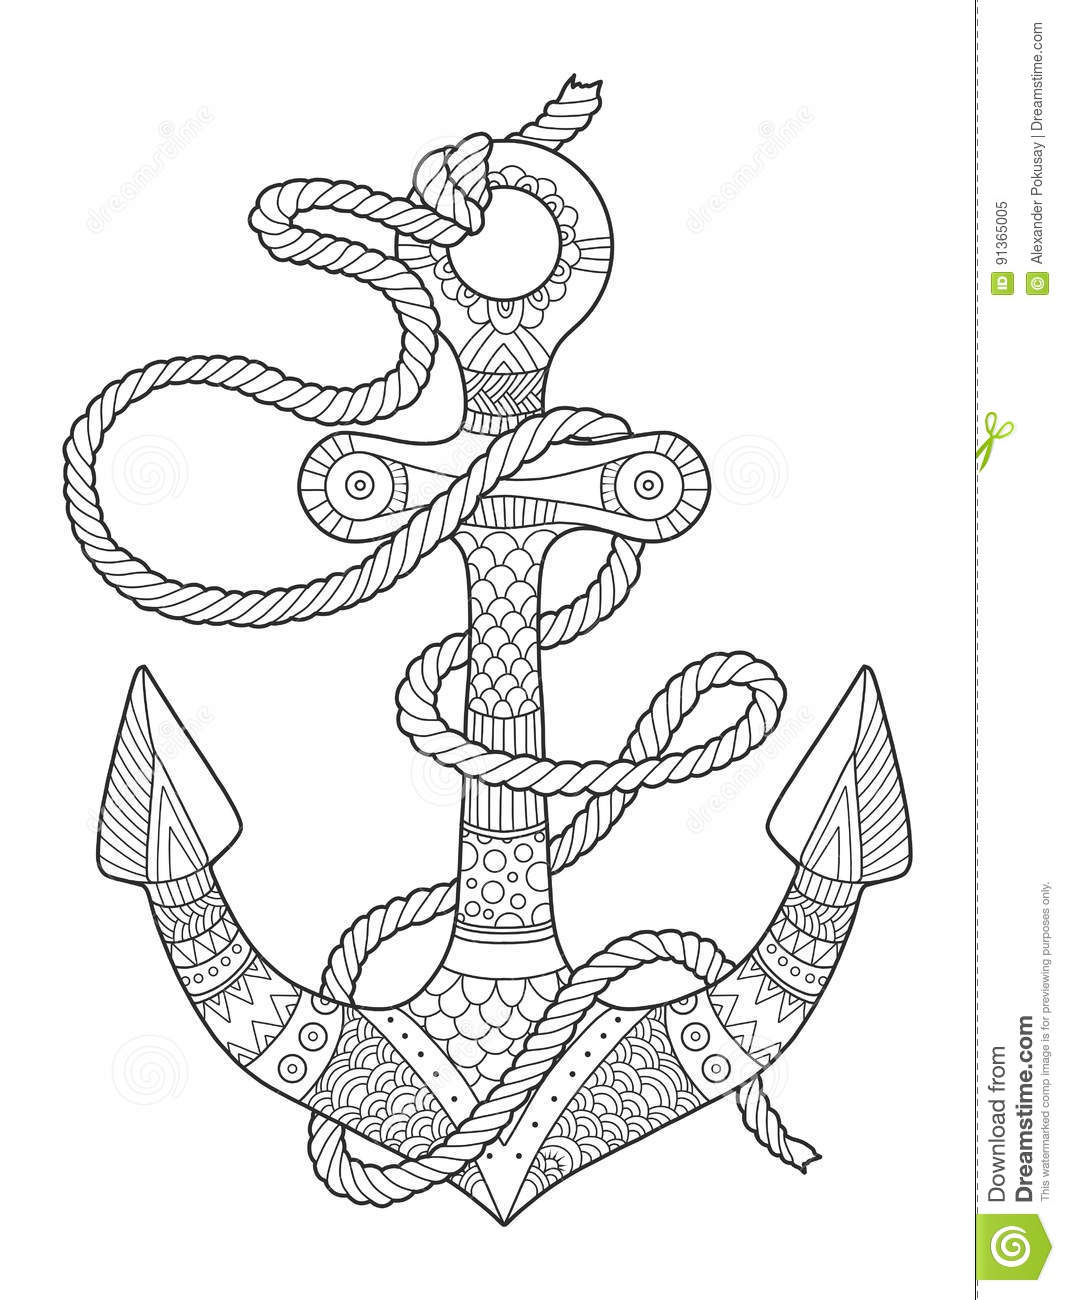 anchor and rope coloring book vector illustration stock